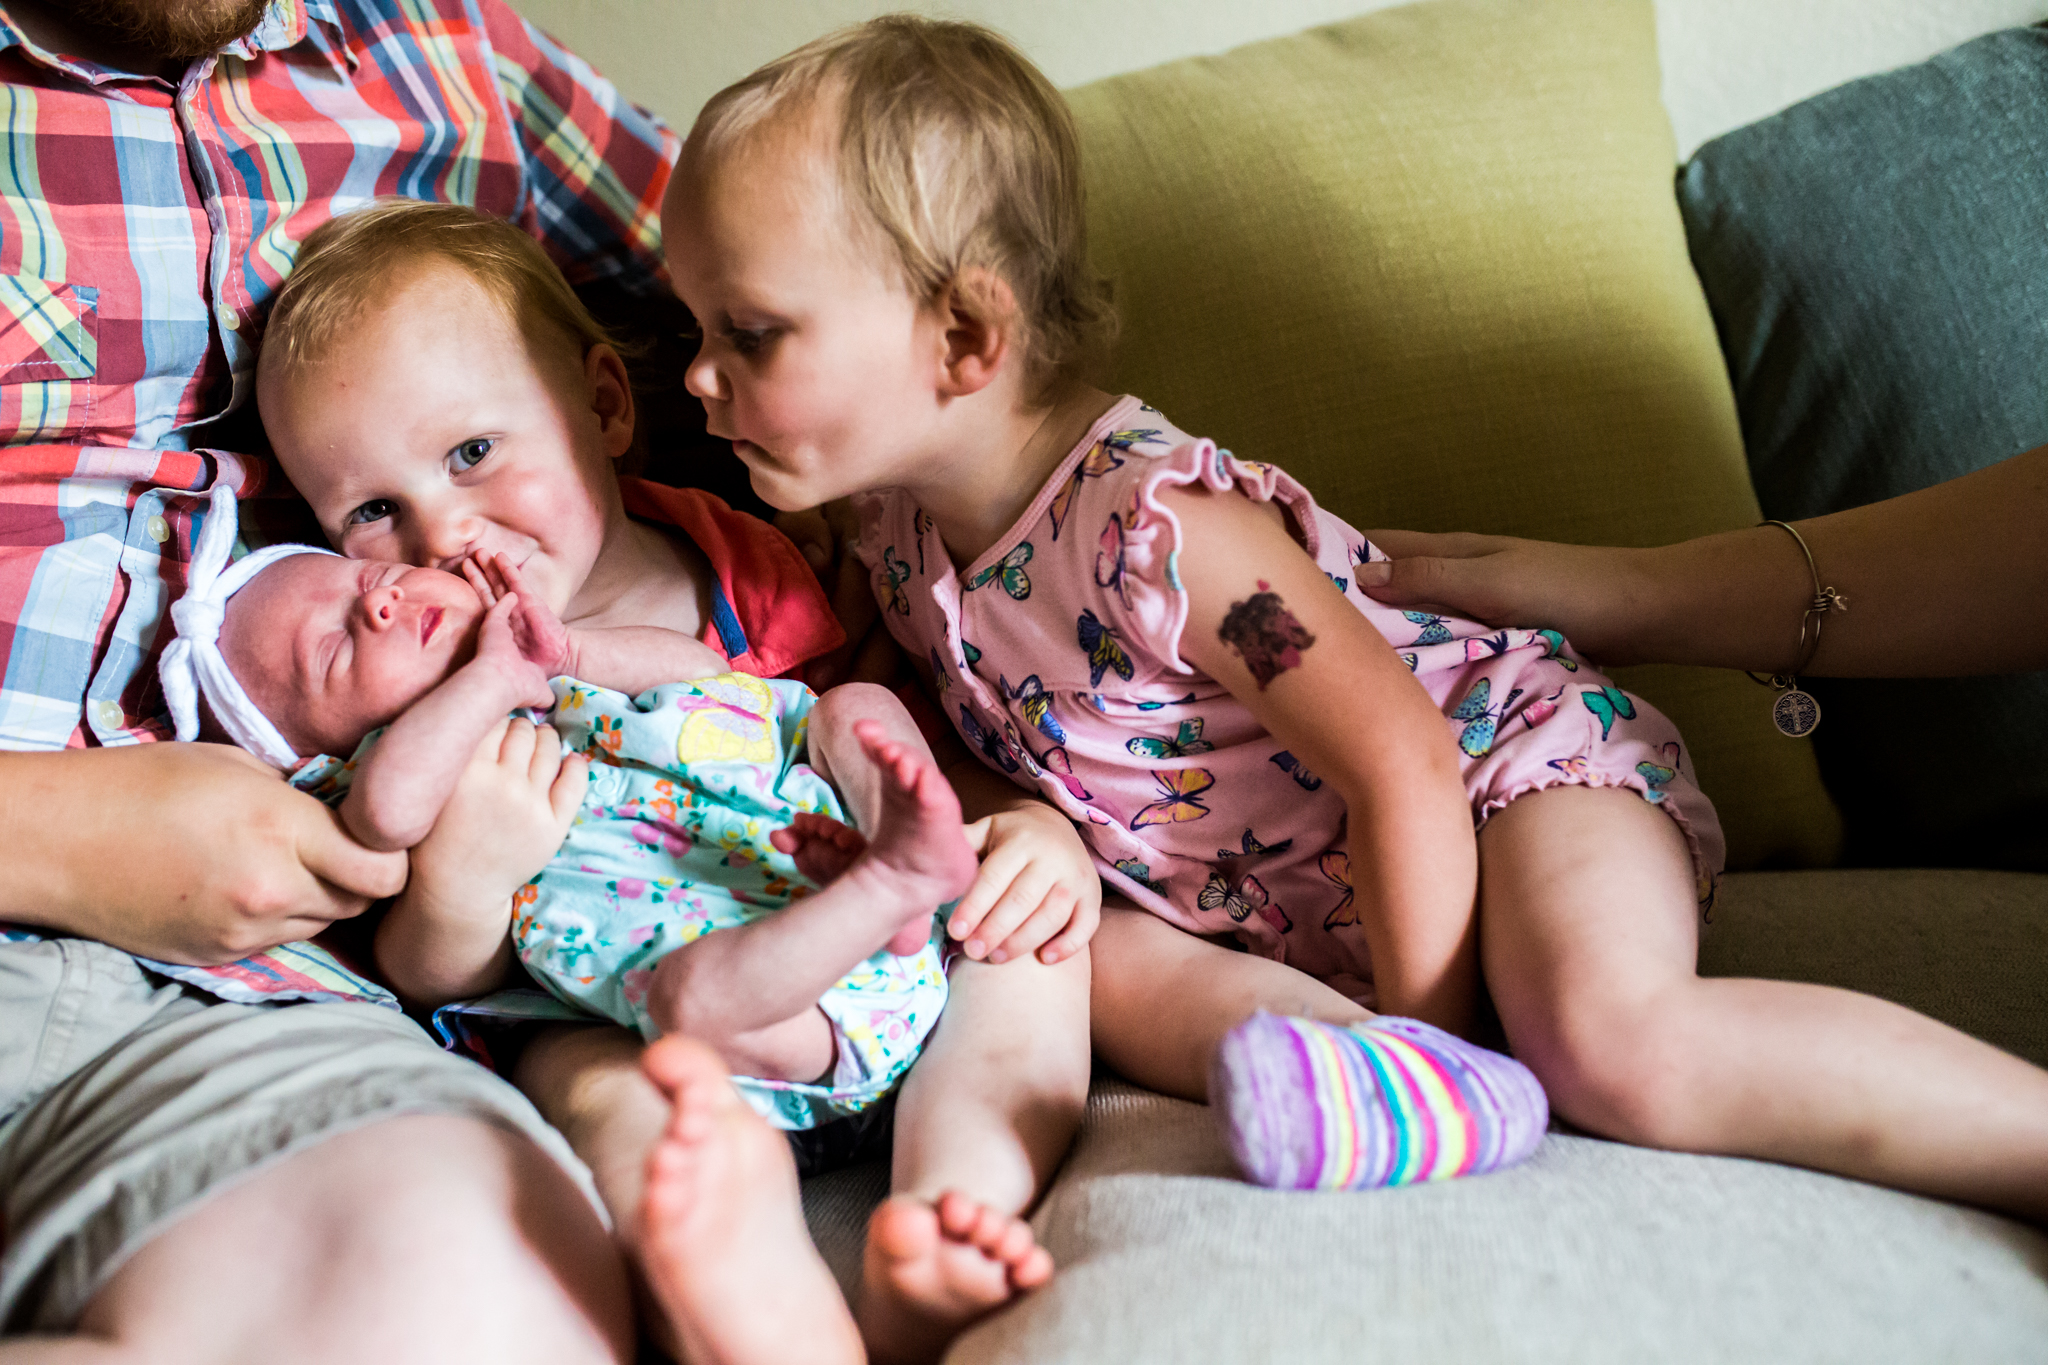 Lawren Rose Photography, a dallas family photographer and maternity photographer, takes a picture of twin brother and sister kissing their newborn baby sister at an in home photo session